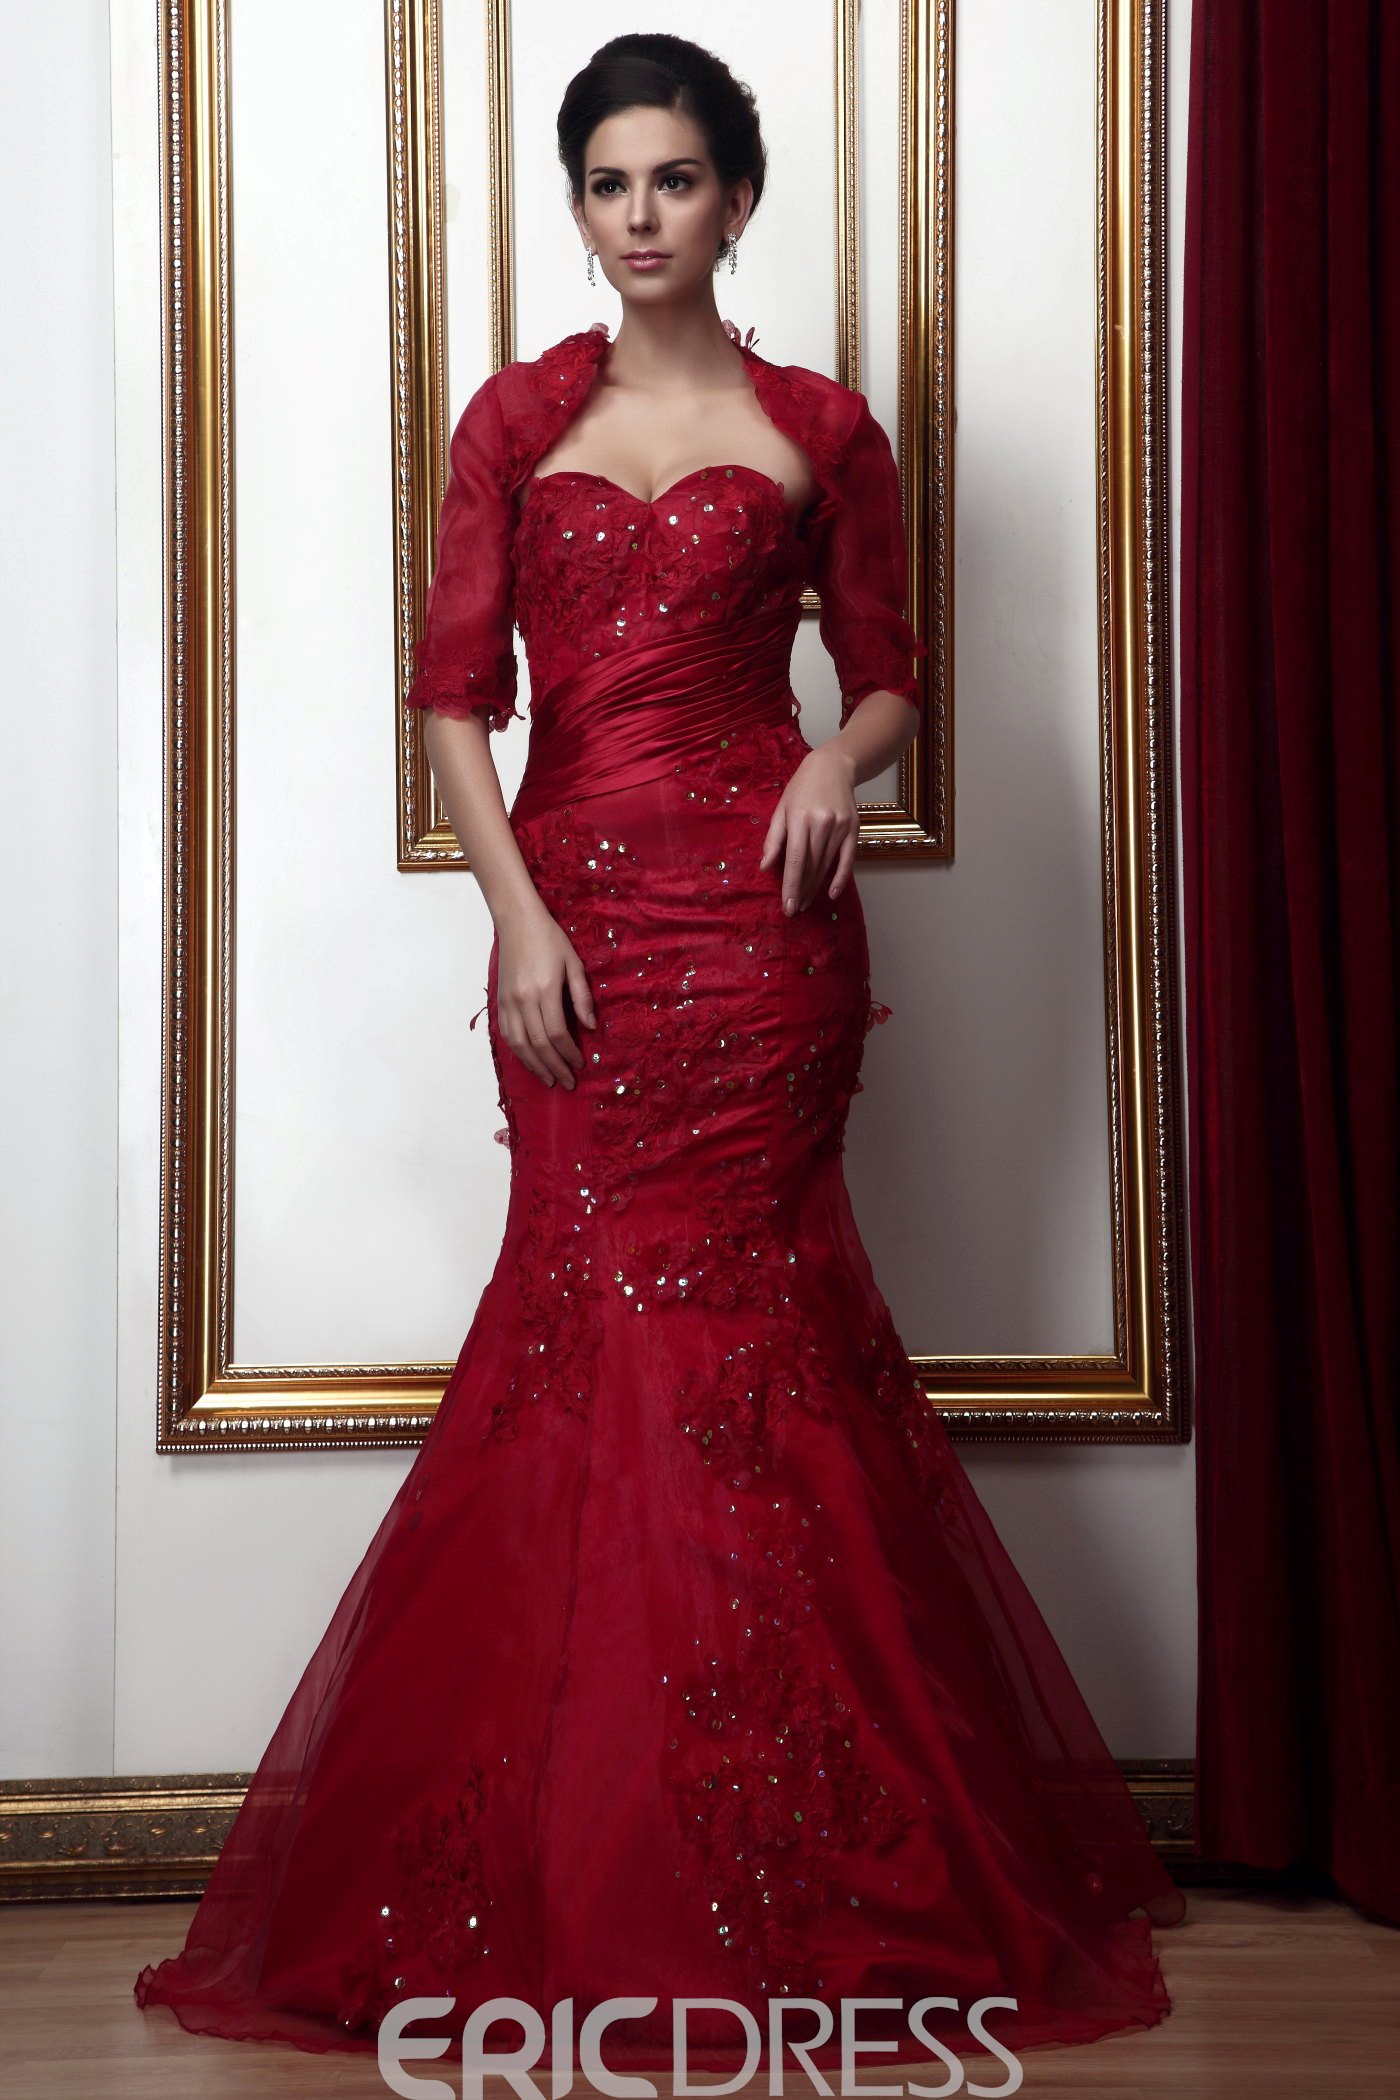 Fabulous Lace Mermaid/Trumpet Sweetheart Neckline Floor-Length Mother of the Bride Dress With Jacket/Shawl